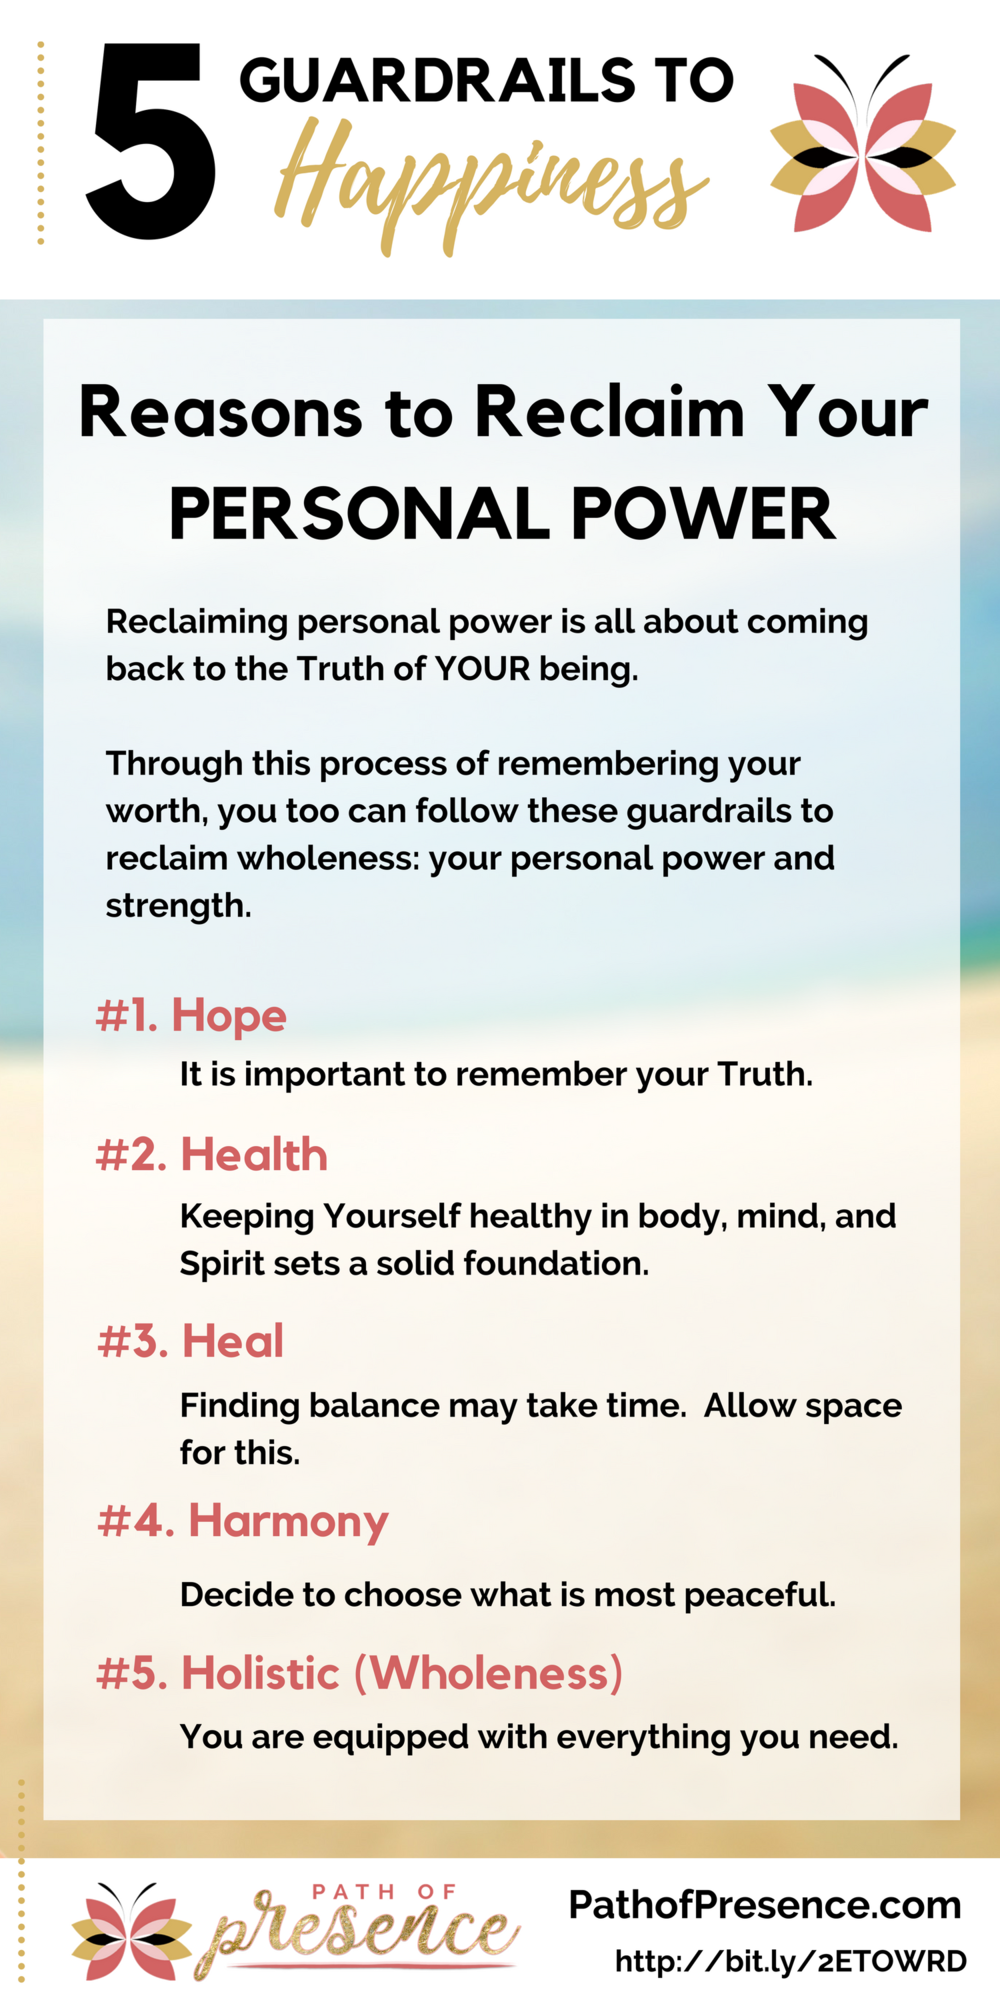 5 Guardrails to Happiness :: Reclaim Your Personal Power and Inner Strength :: Path of Presence :: Hope | Health | Heal | Harmony | Holistic (Wholeness - Holy) :: Evelyn Foreman